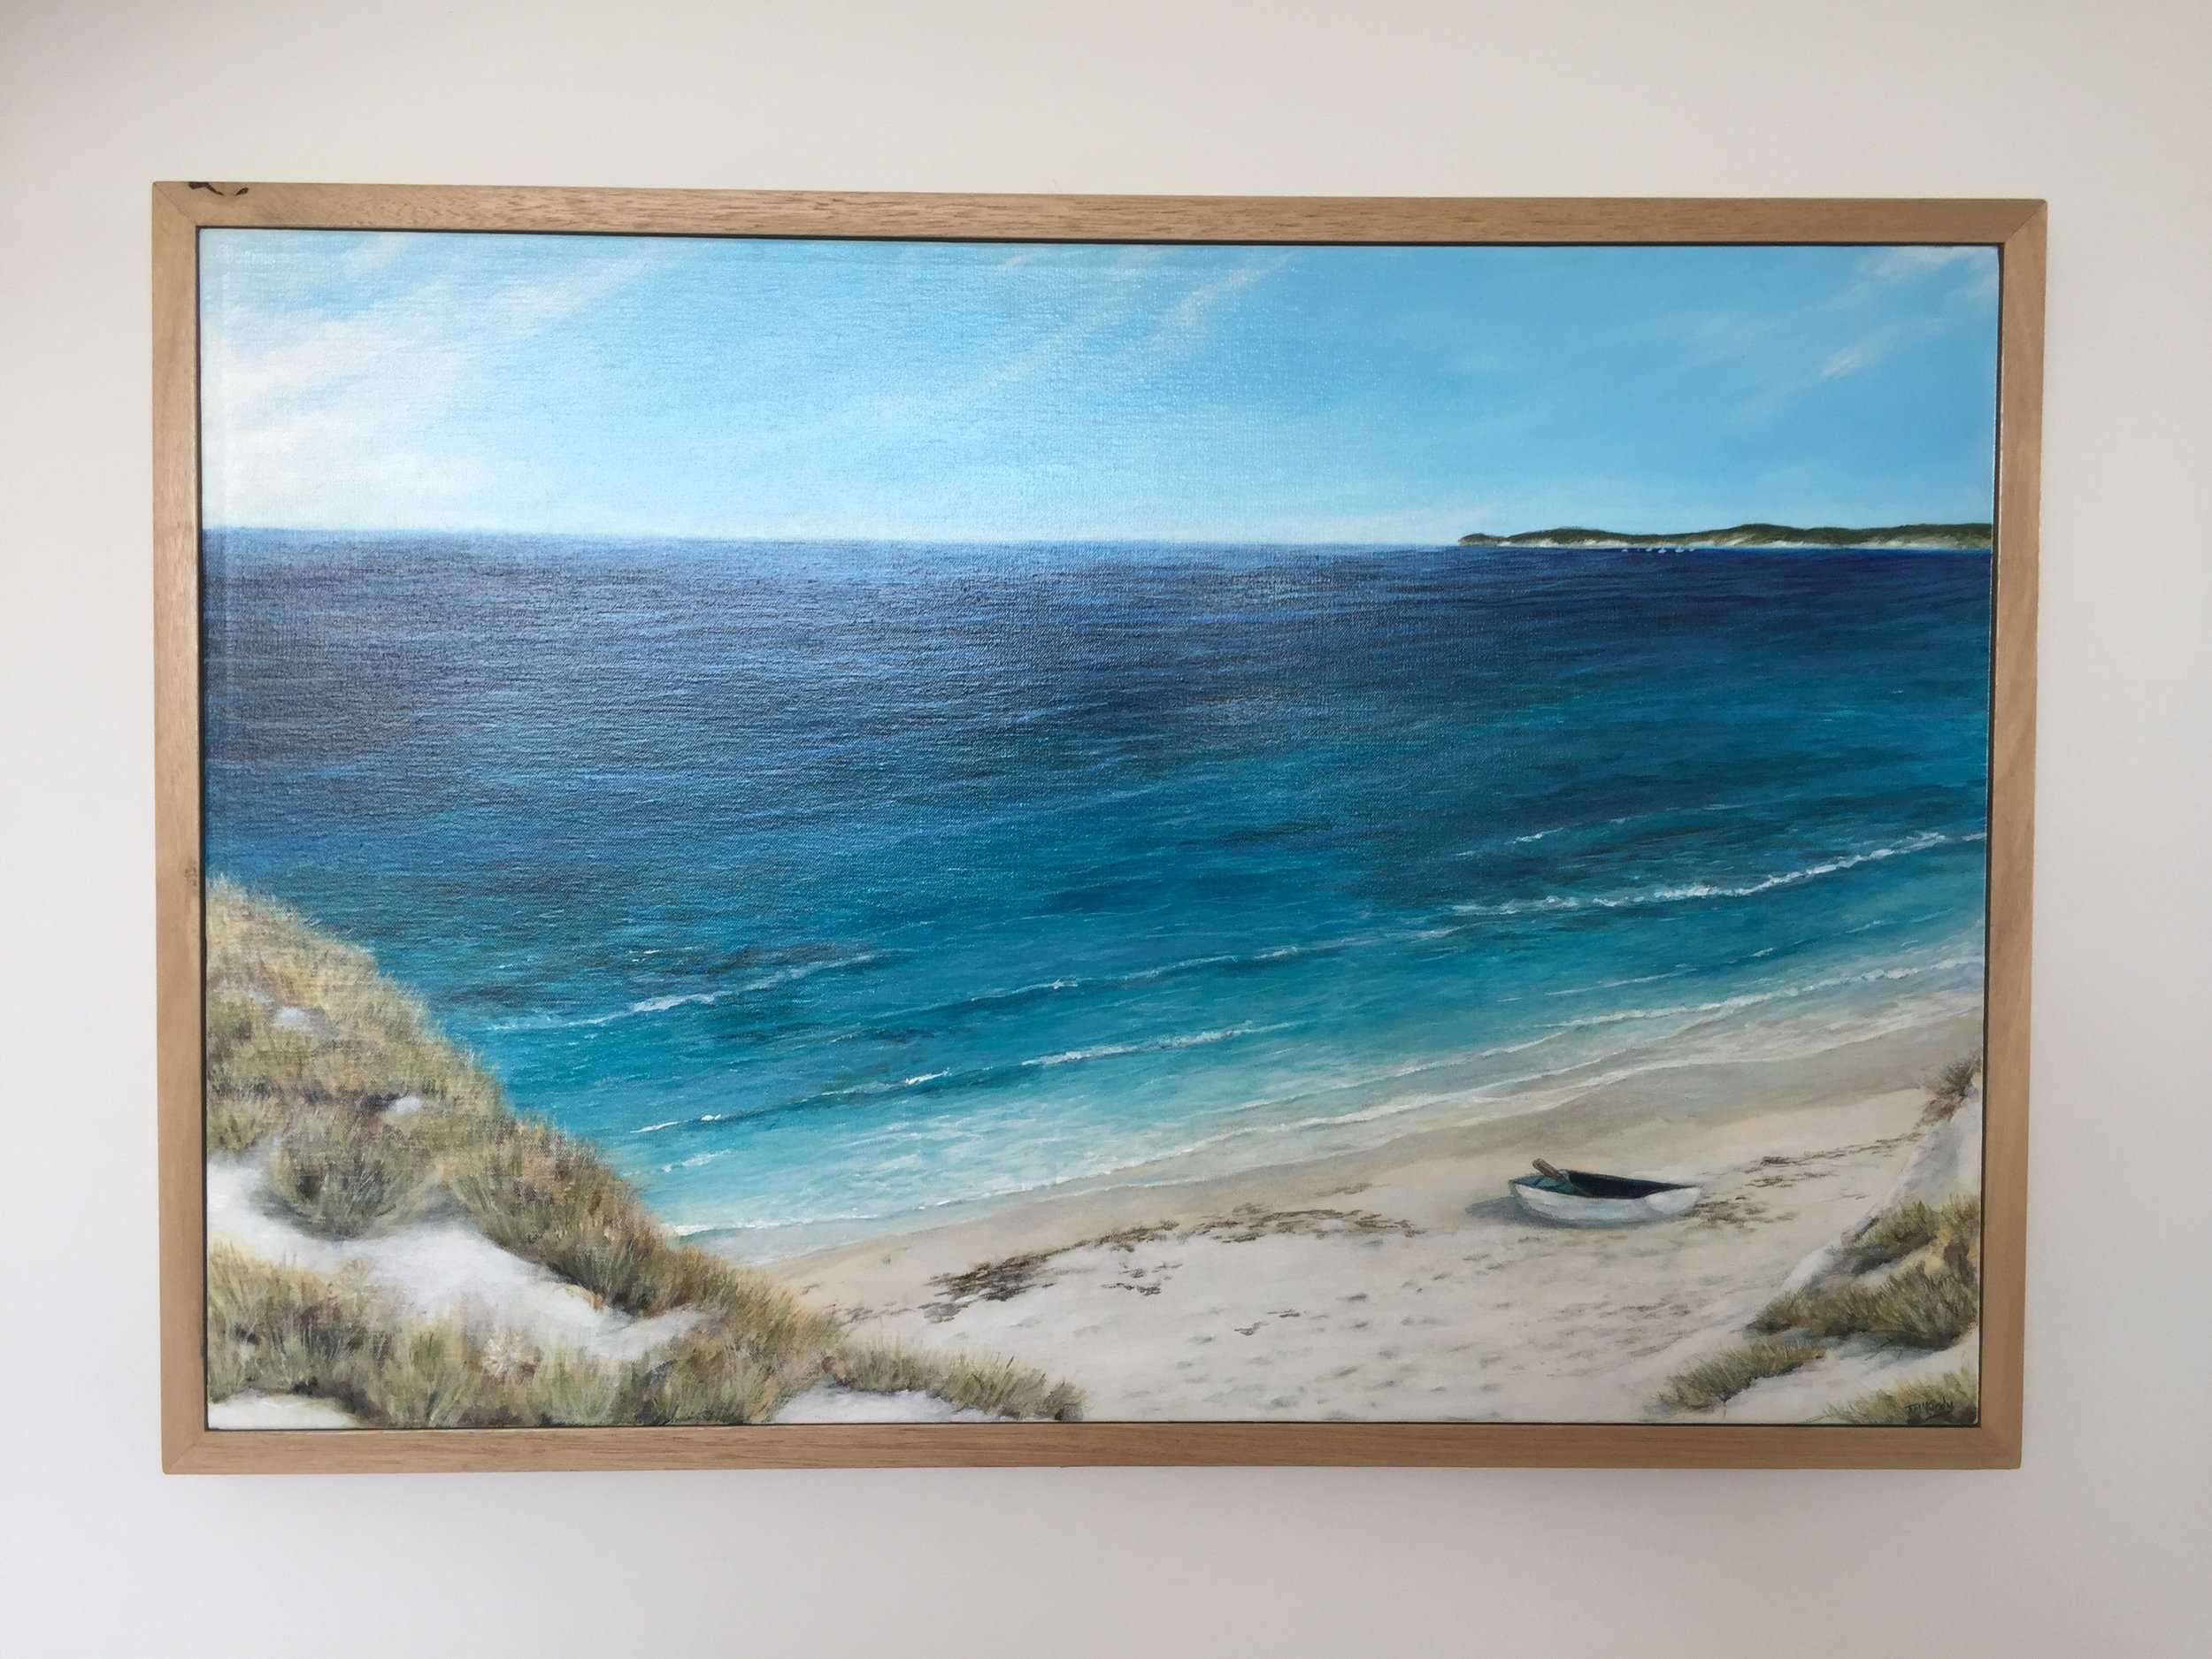 West Rottnest - $600Acrylic on canvas. Australian oak frame.760 x 510mm